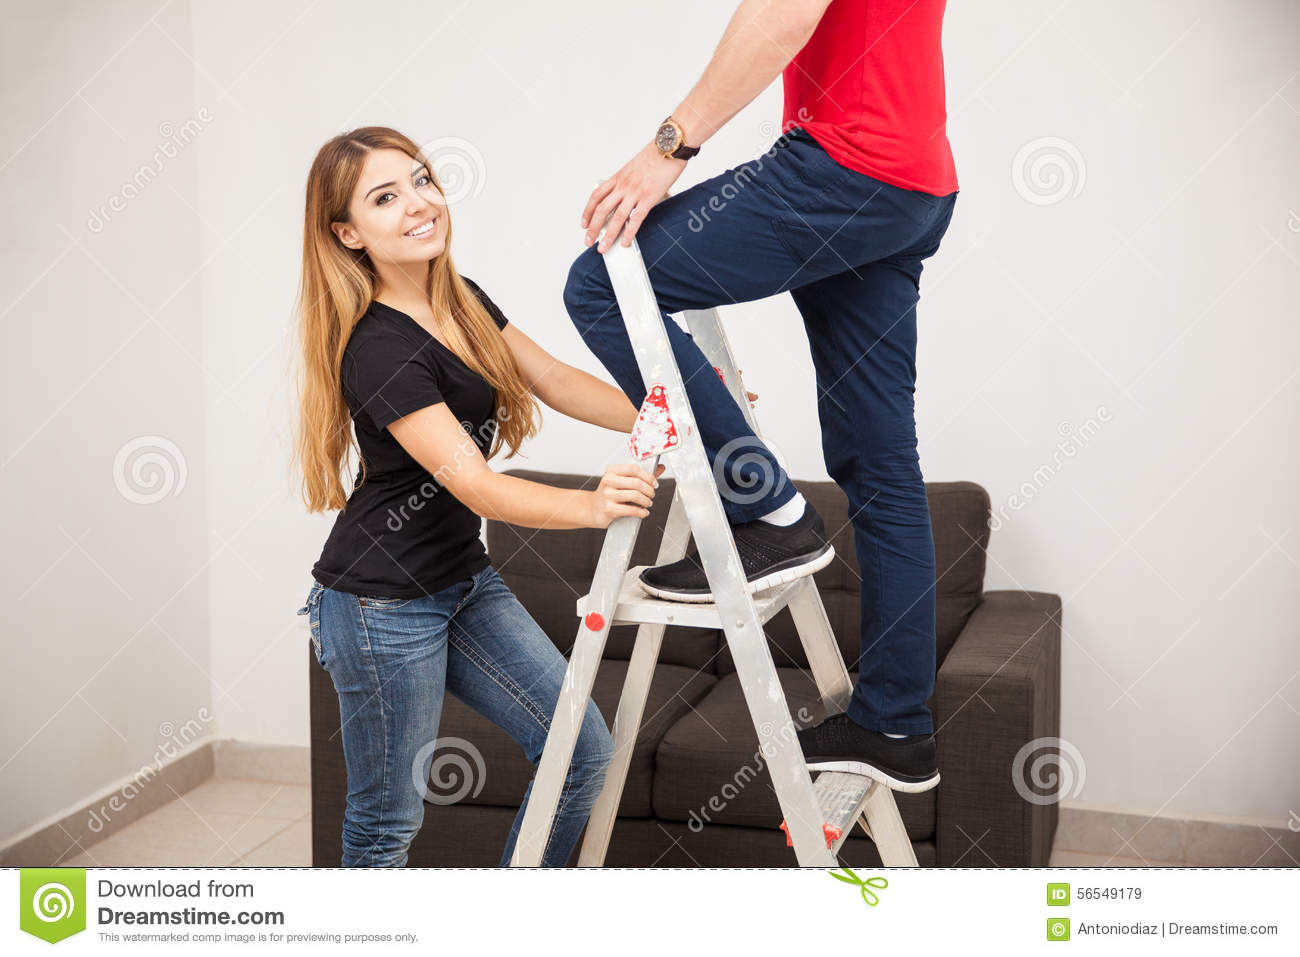 Pretty Girl Holding A Ladder Stock Photo Image 56549179